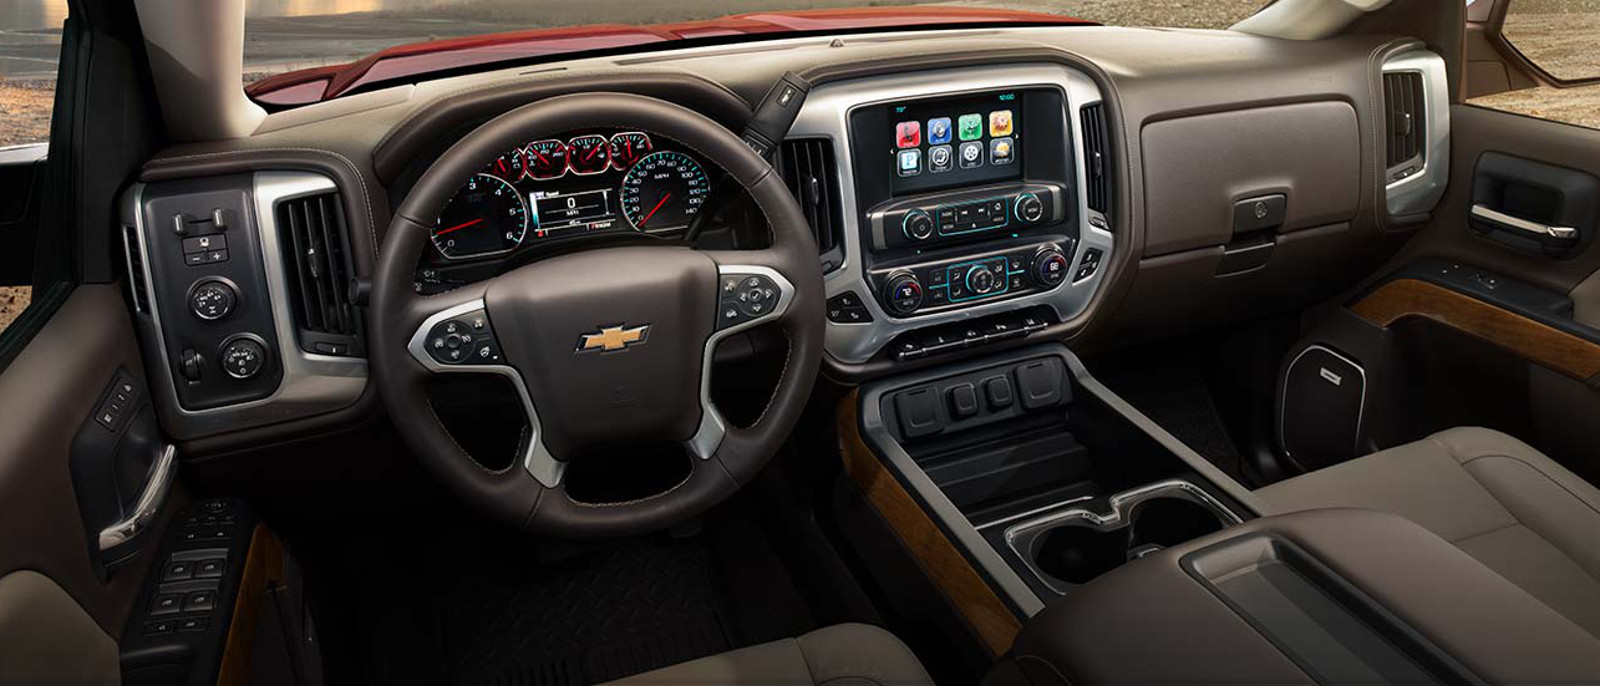 2015 Cheverolet Silverado Interior